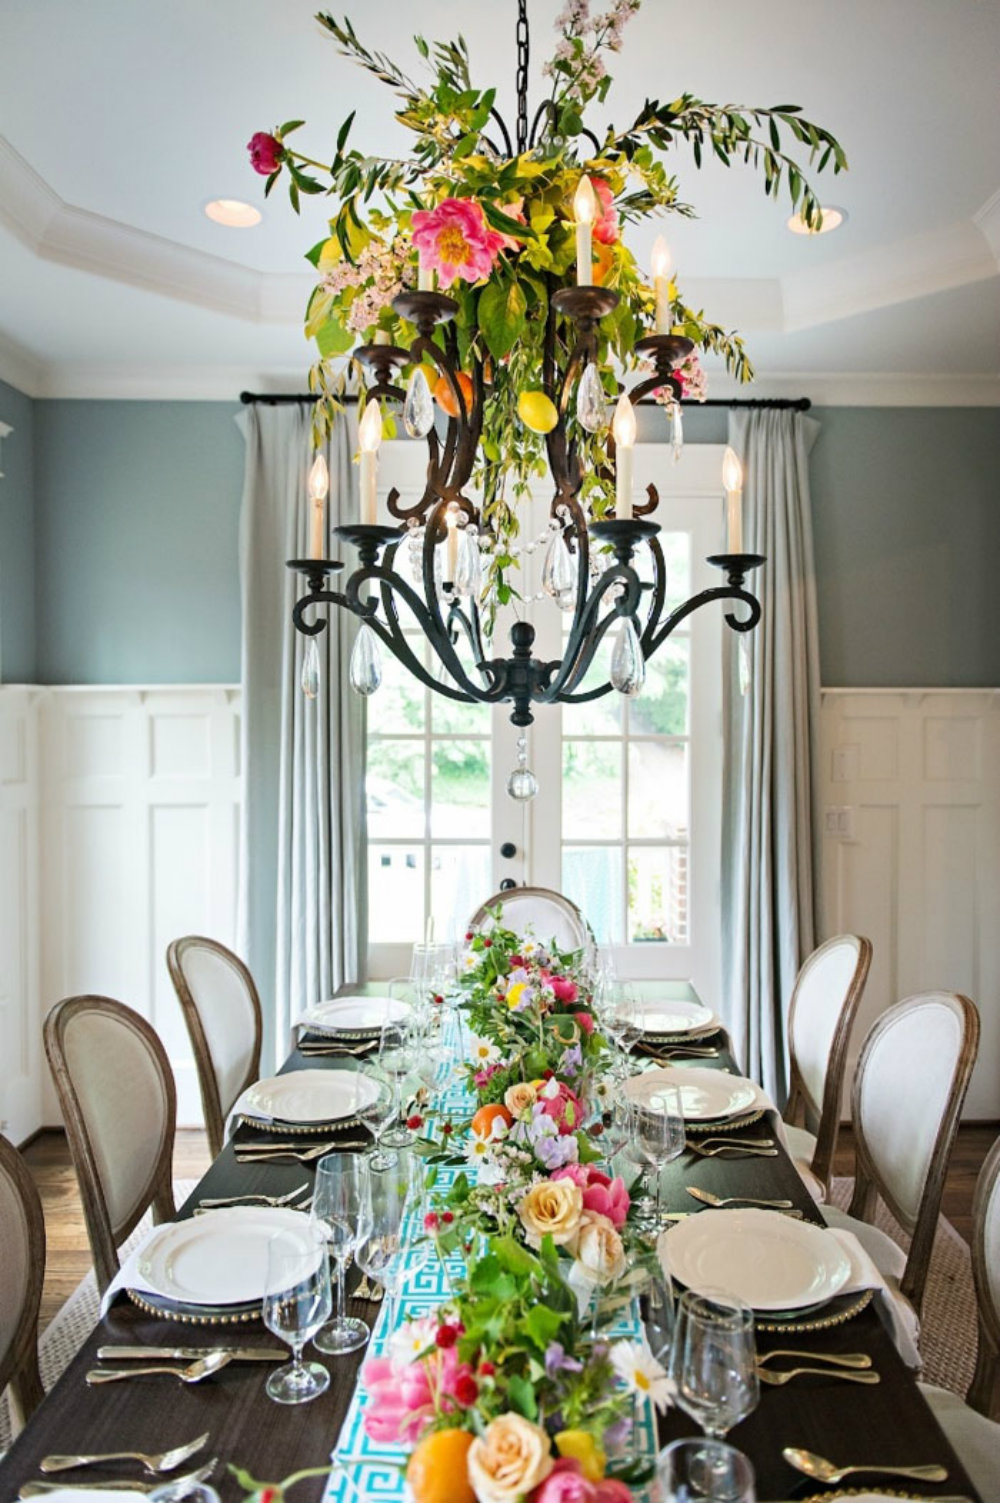 5 Easter Tablescapes That Will Make The Difference thanksgiving décor ideas Thanksgiving Décor Ideas For An Elegant Evening 5 Easter Tablescapes That Will Make The Difference thanksgiving décor ideas Thanksgiving Décor Ideas For An Elegant Evening 5 Easter Tablescapes That Will Make The Difference